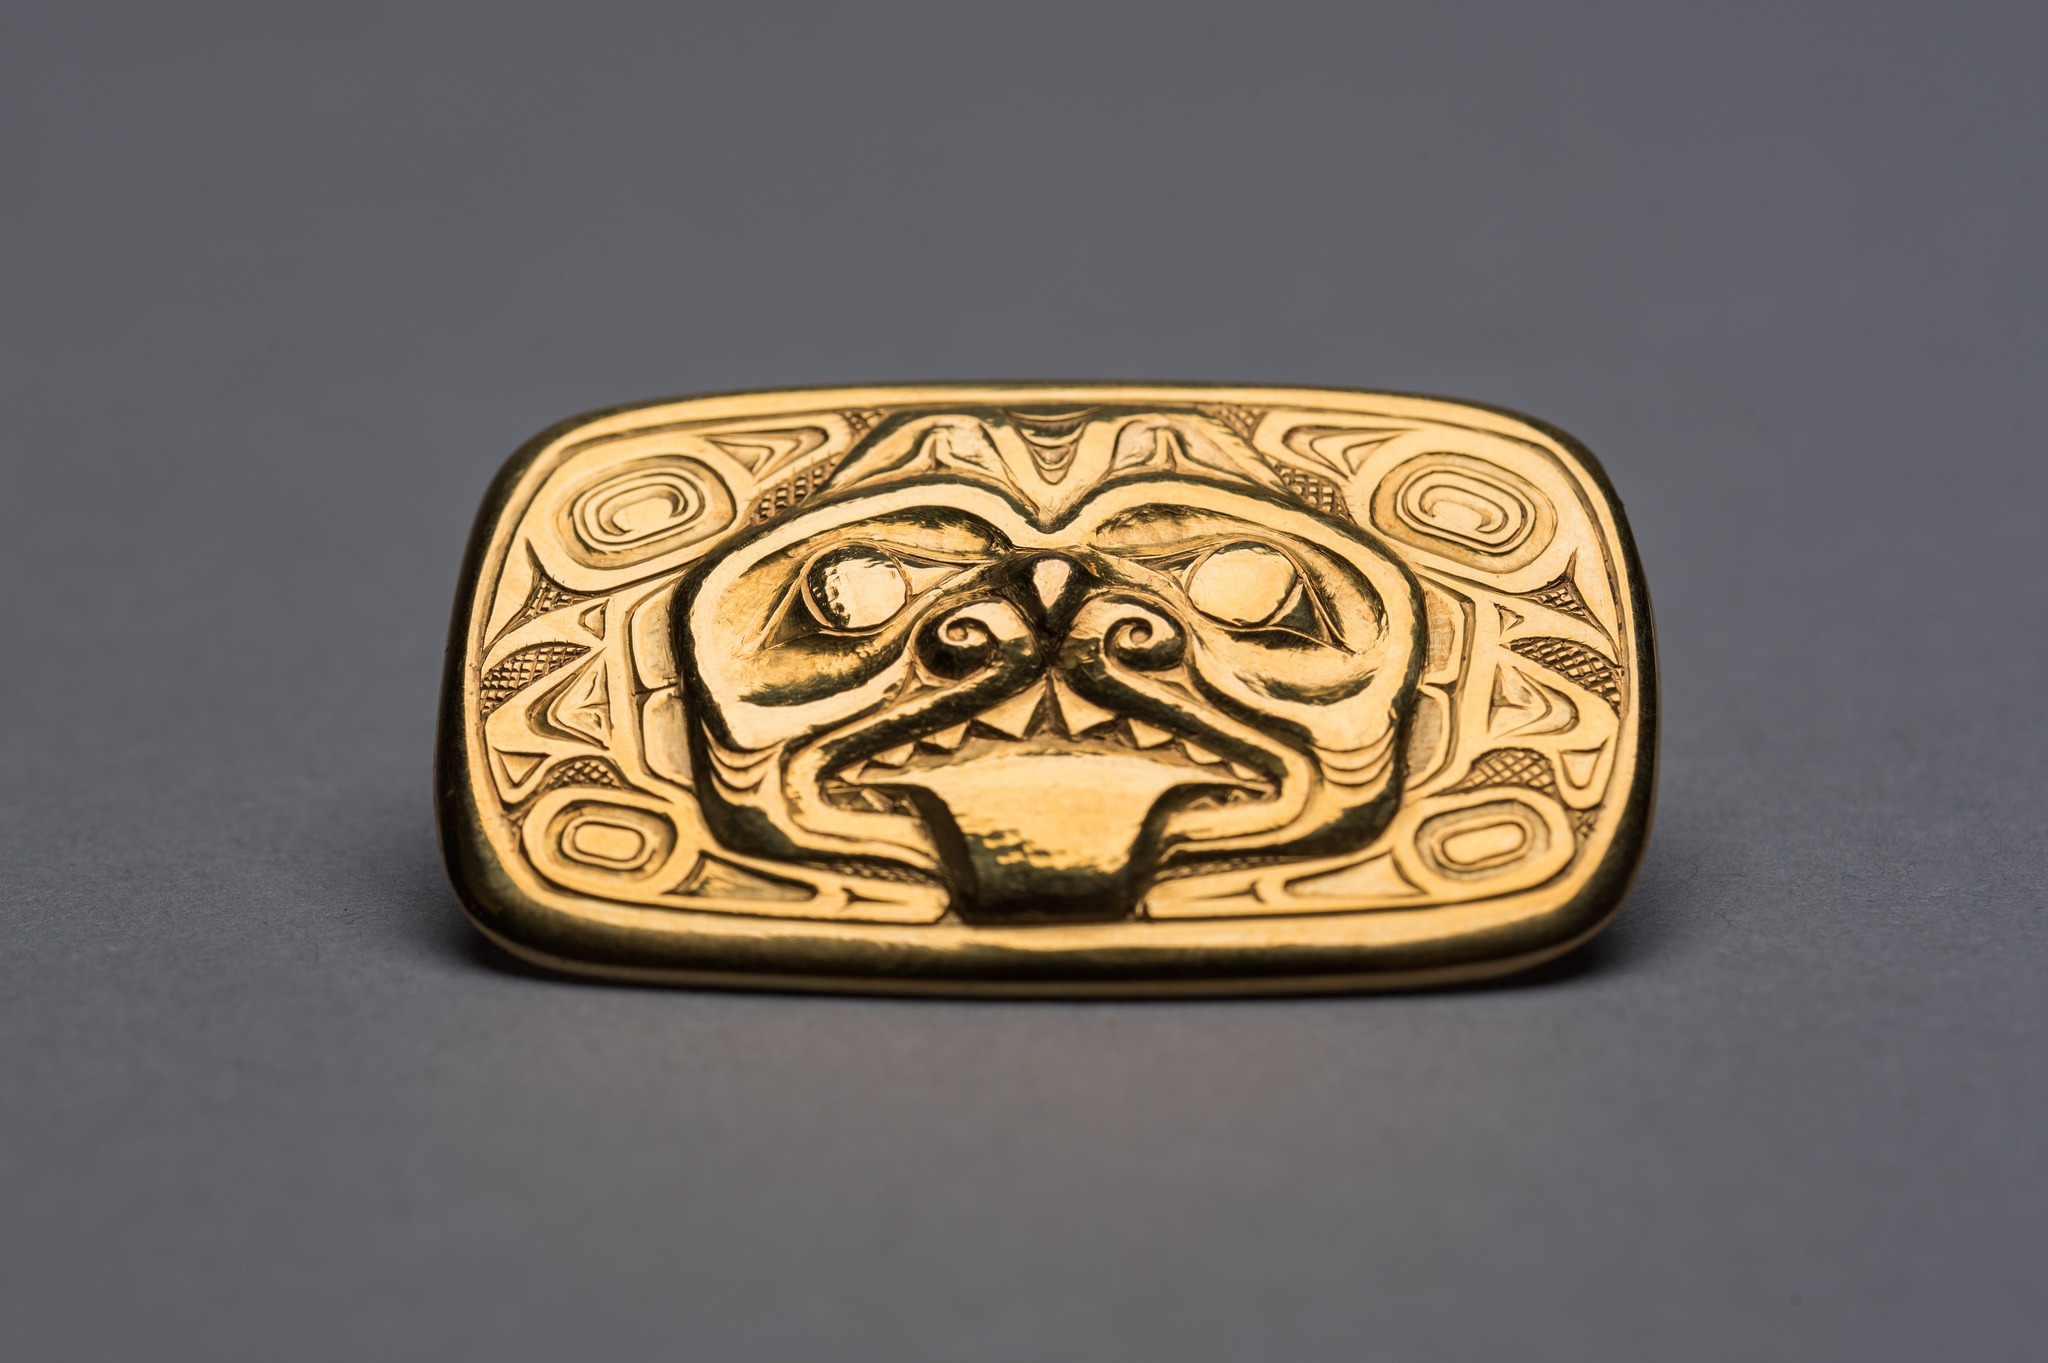 A gold brooch with a dogfish motif, circa 1963, created by renowned Haida artist Bill Reid